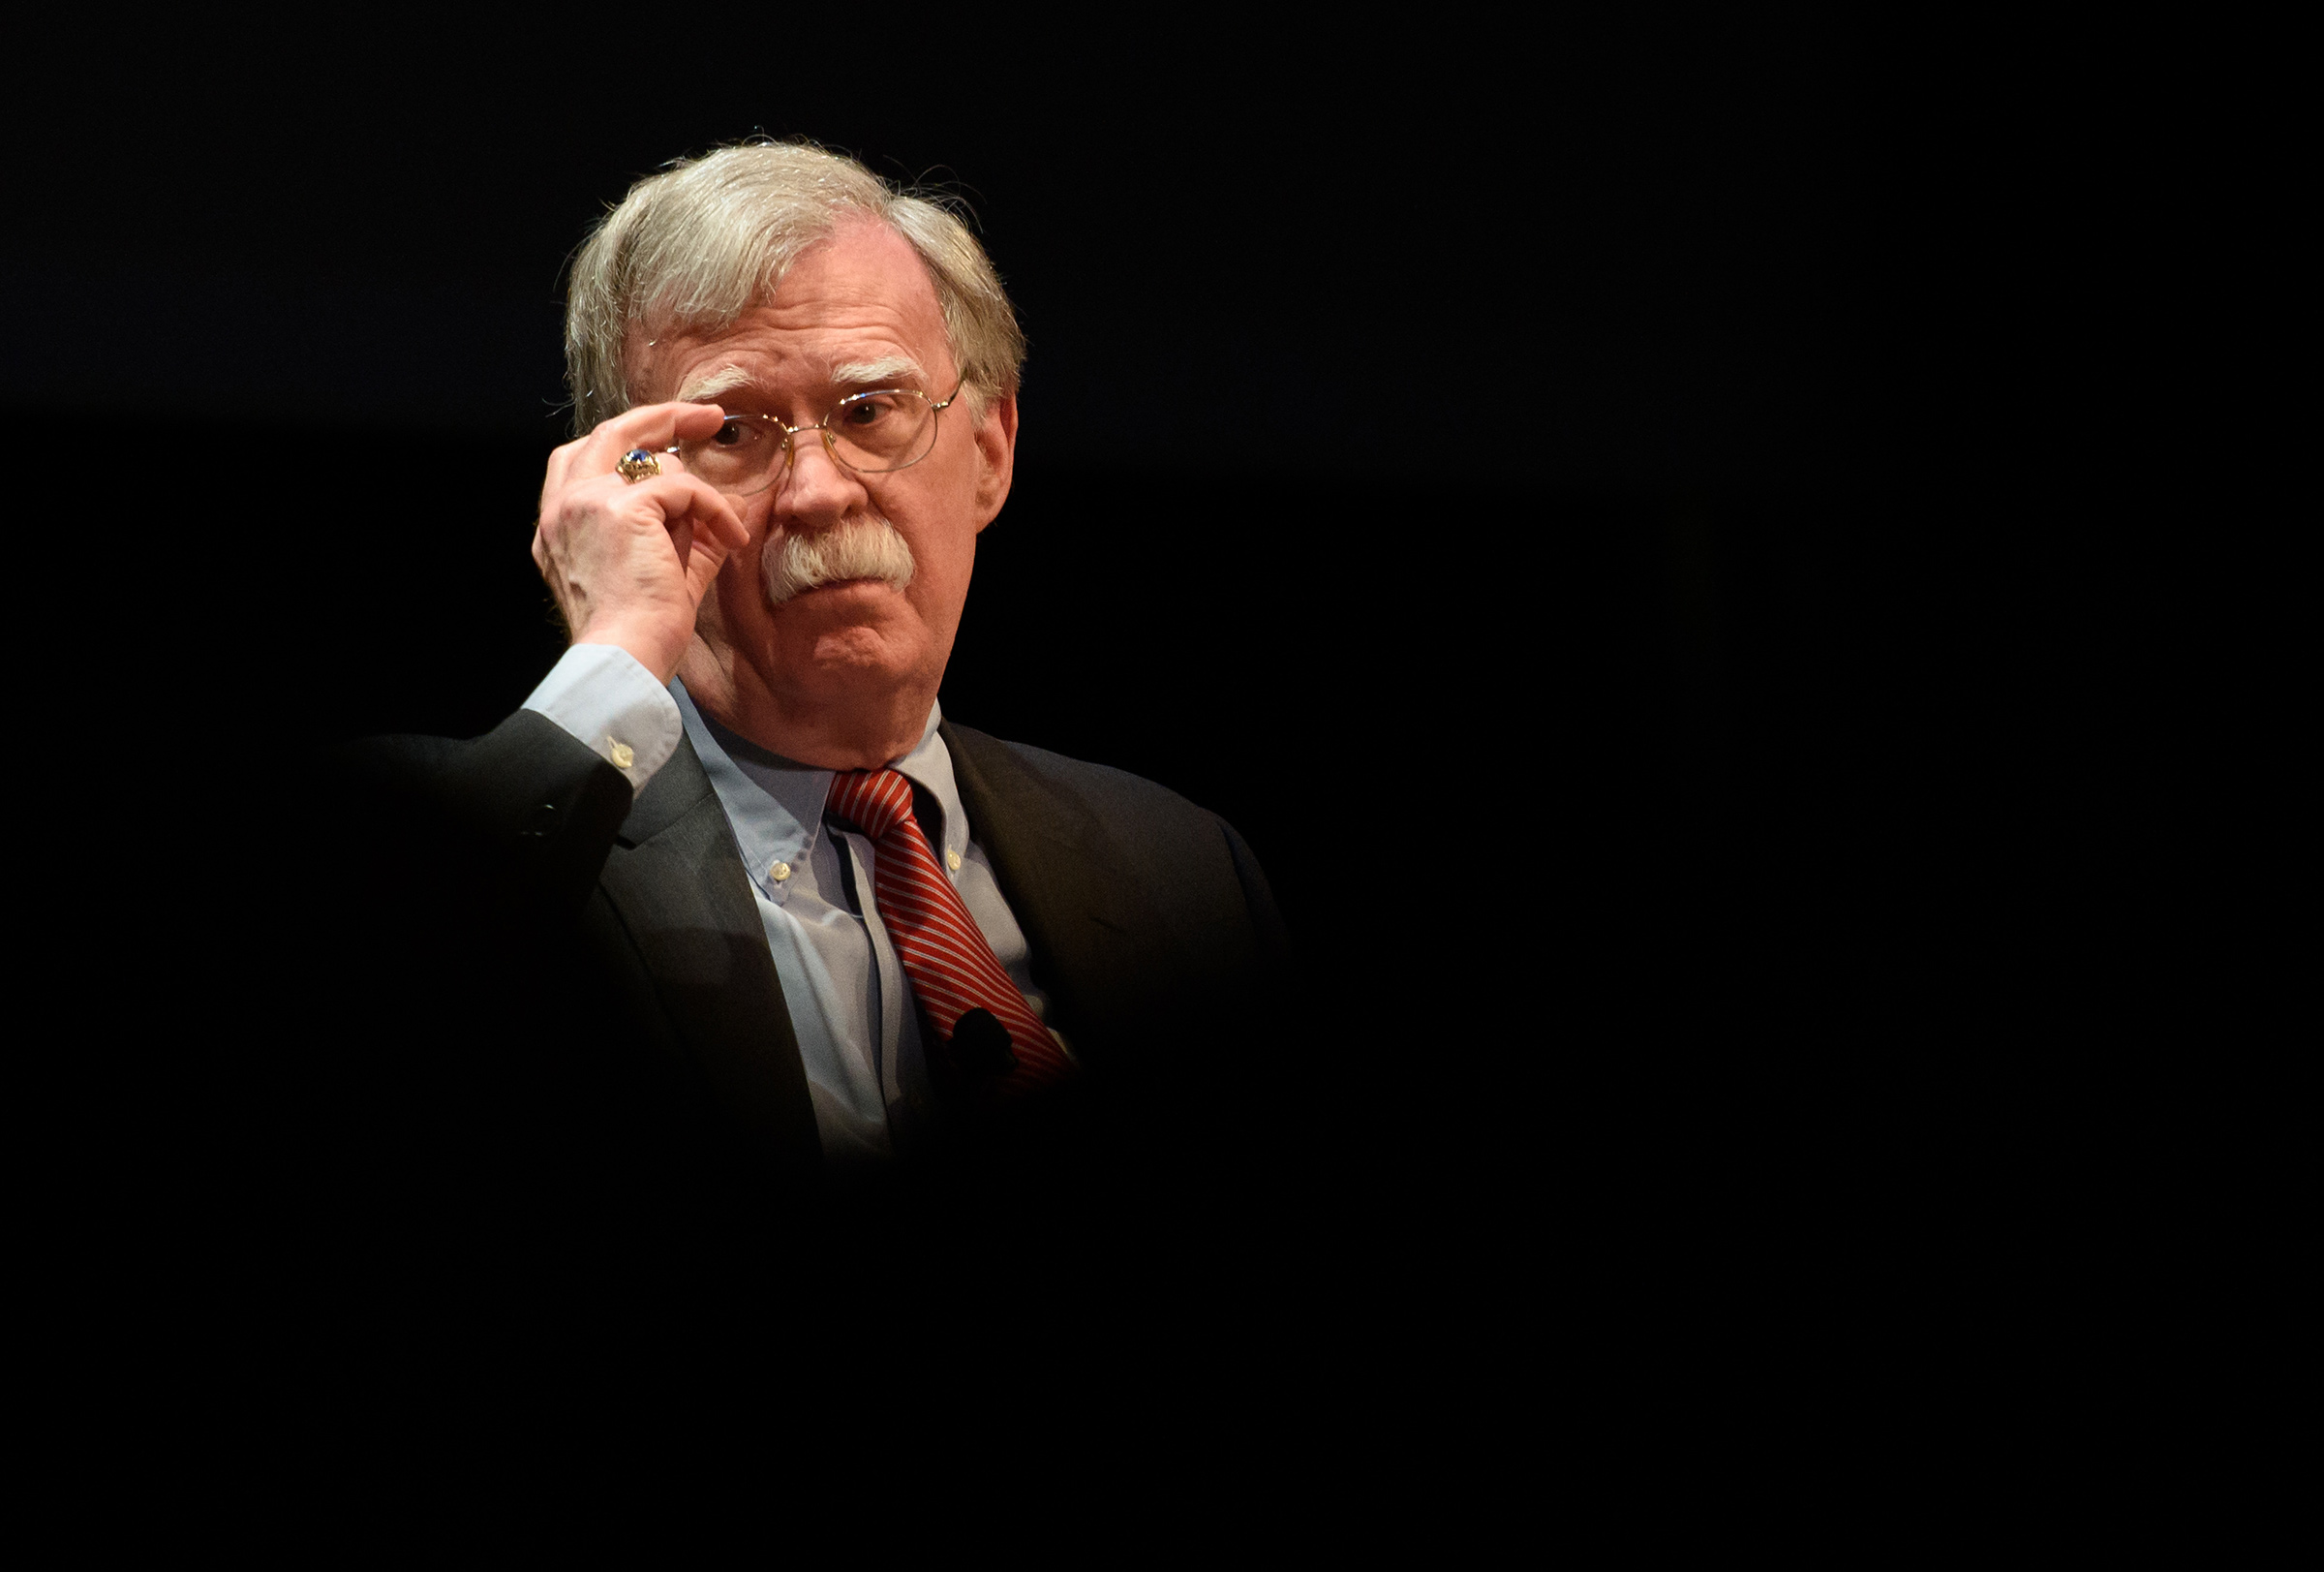 Former National Security Advisor John Bolton at the Page Auditorium on the campus of Duke University on Feb. 17, 2020.